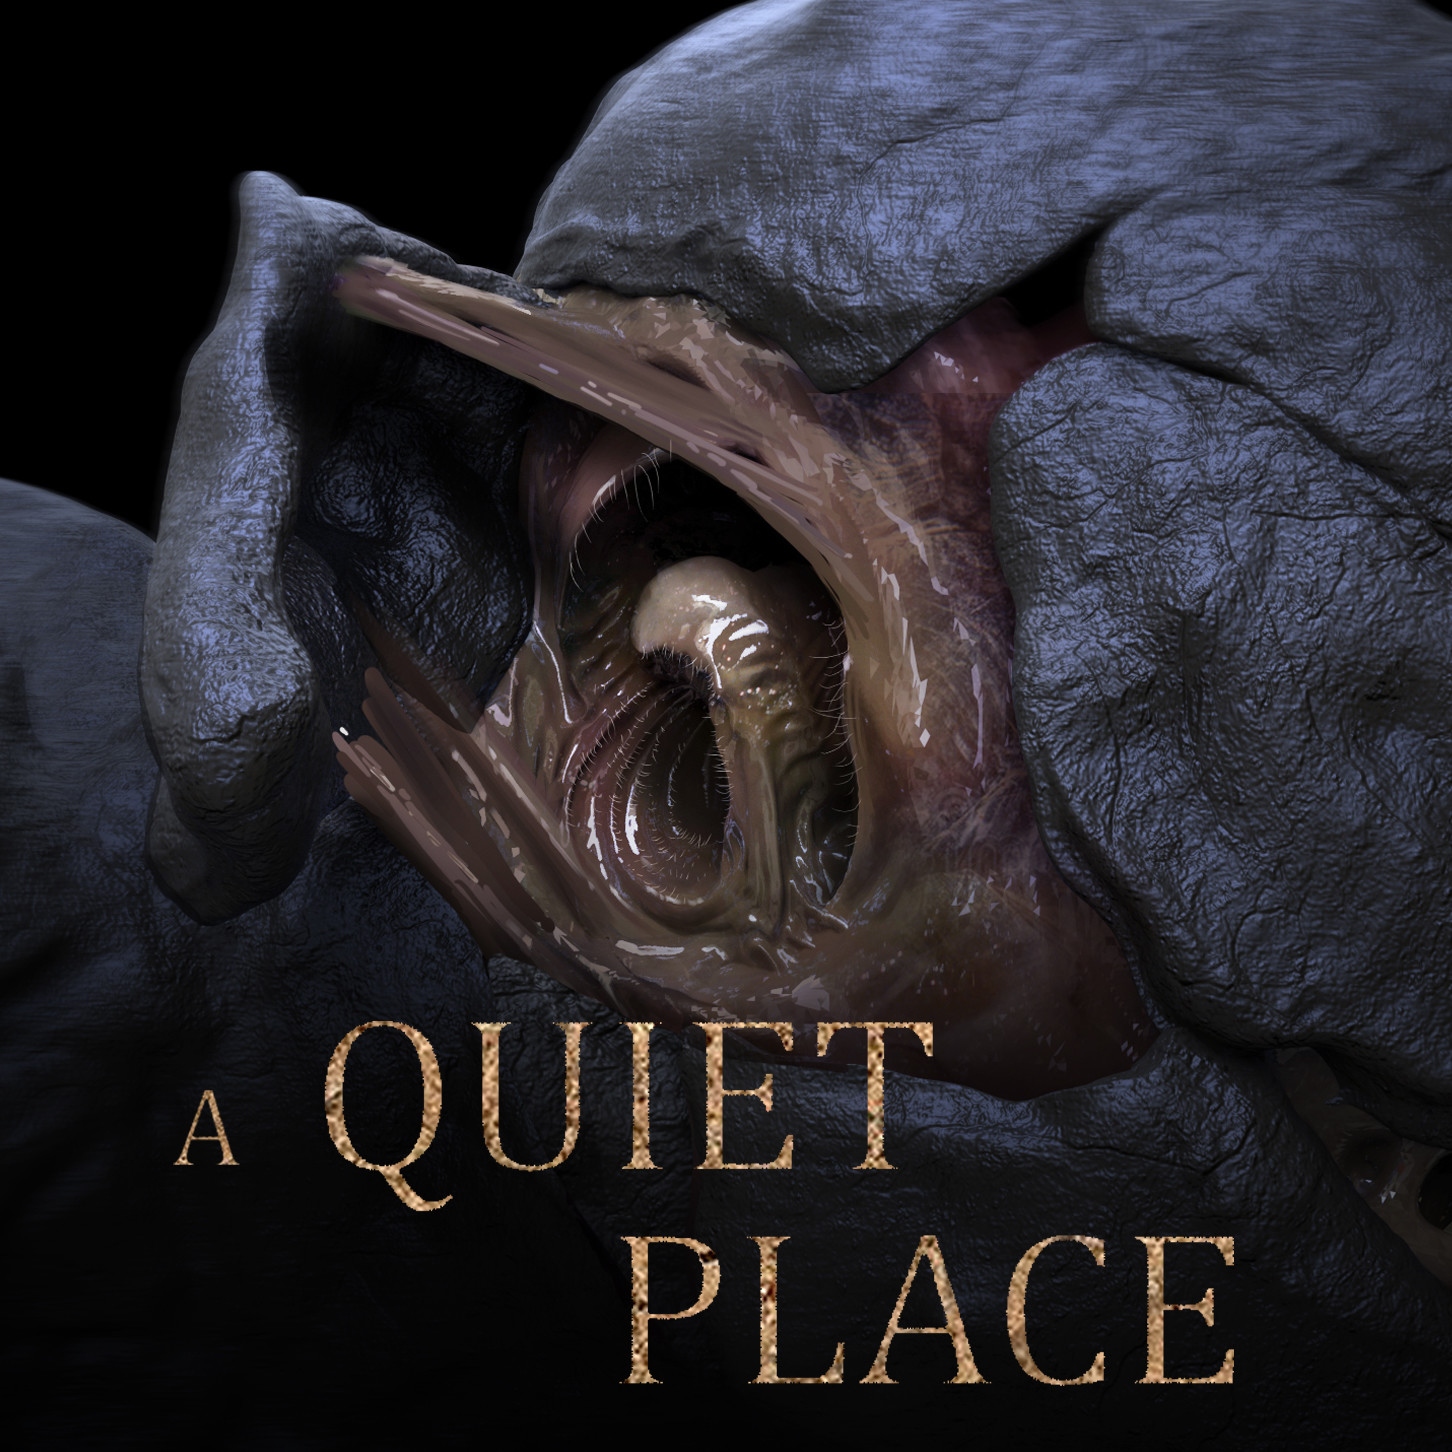 A Quiet Place Ear Concepts